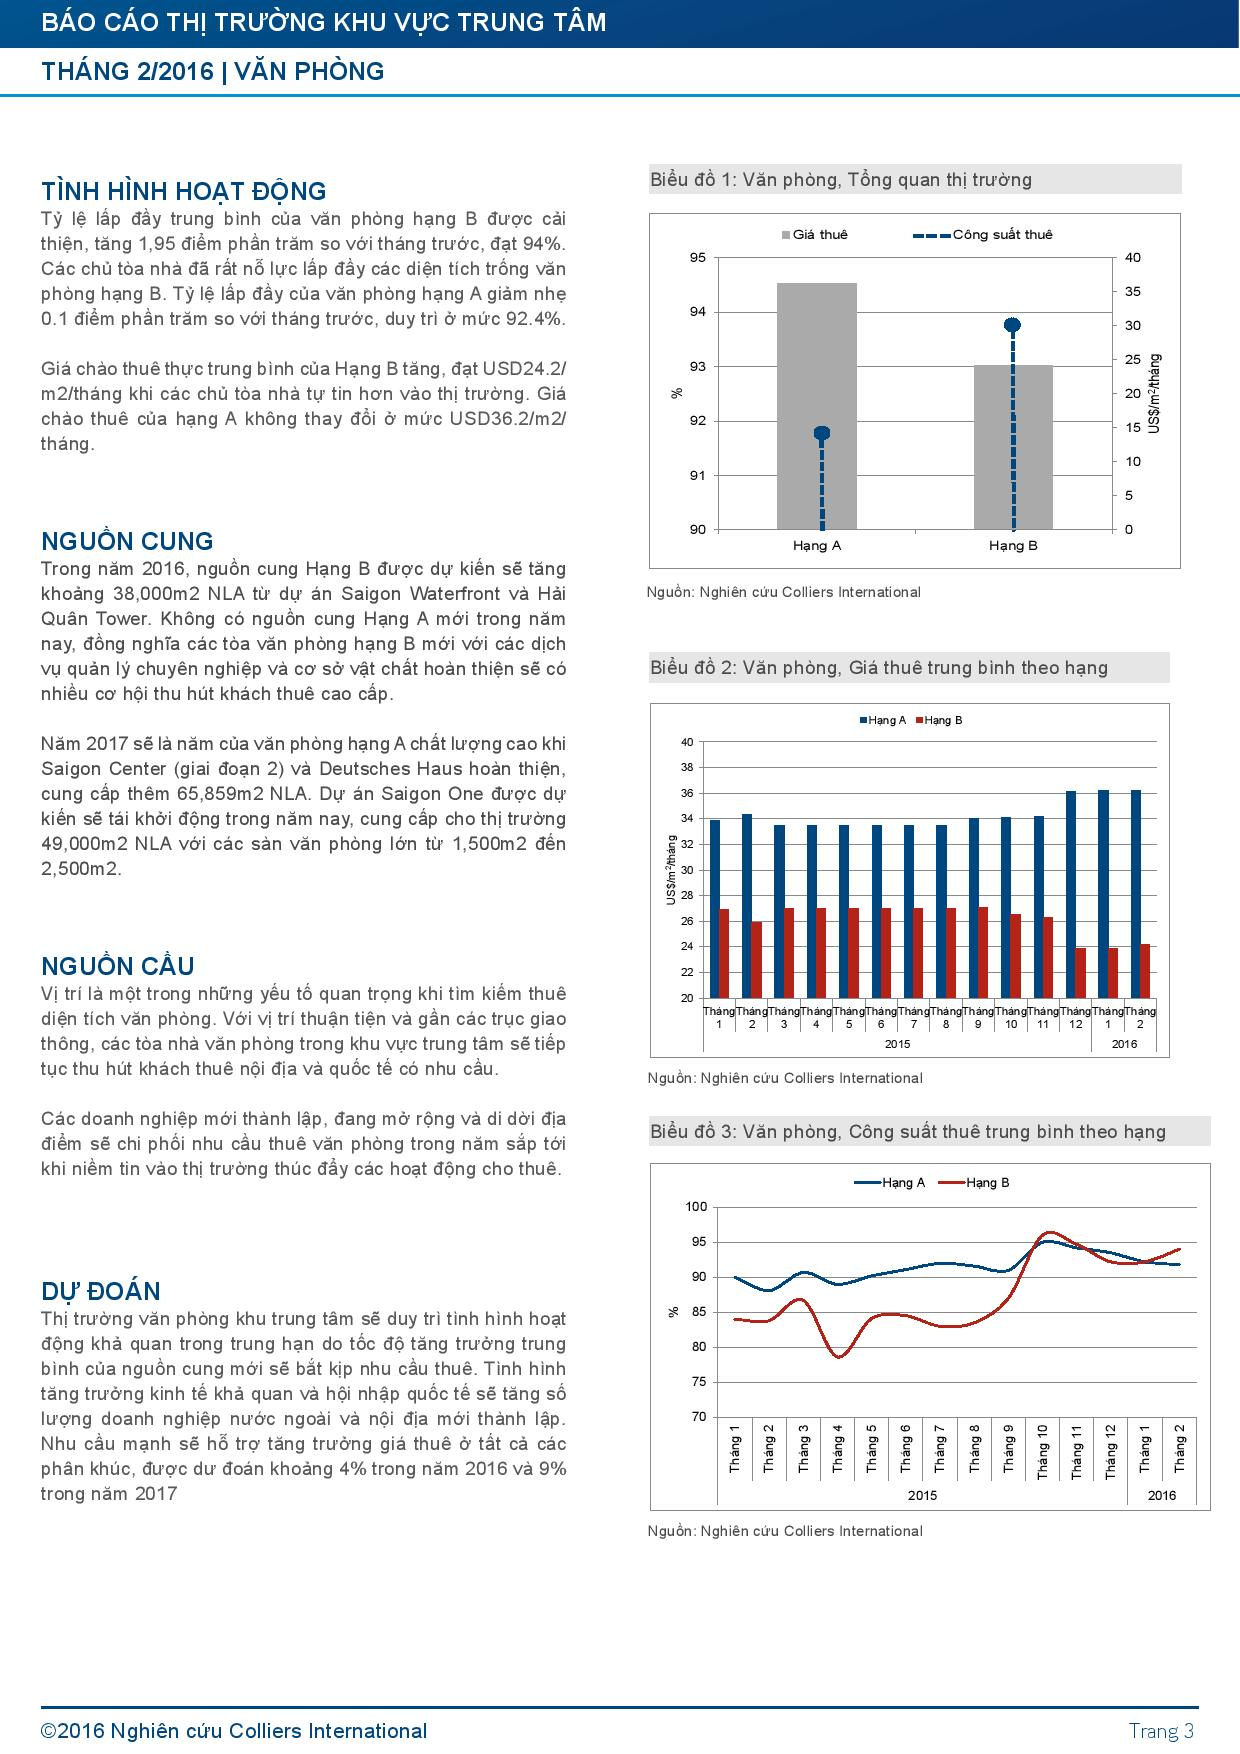 Colliers_HCMC_CBD report_Feb 2016_VIE-page-003